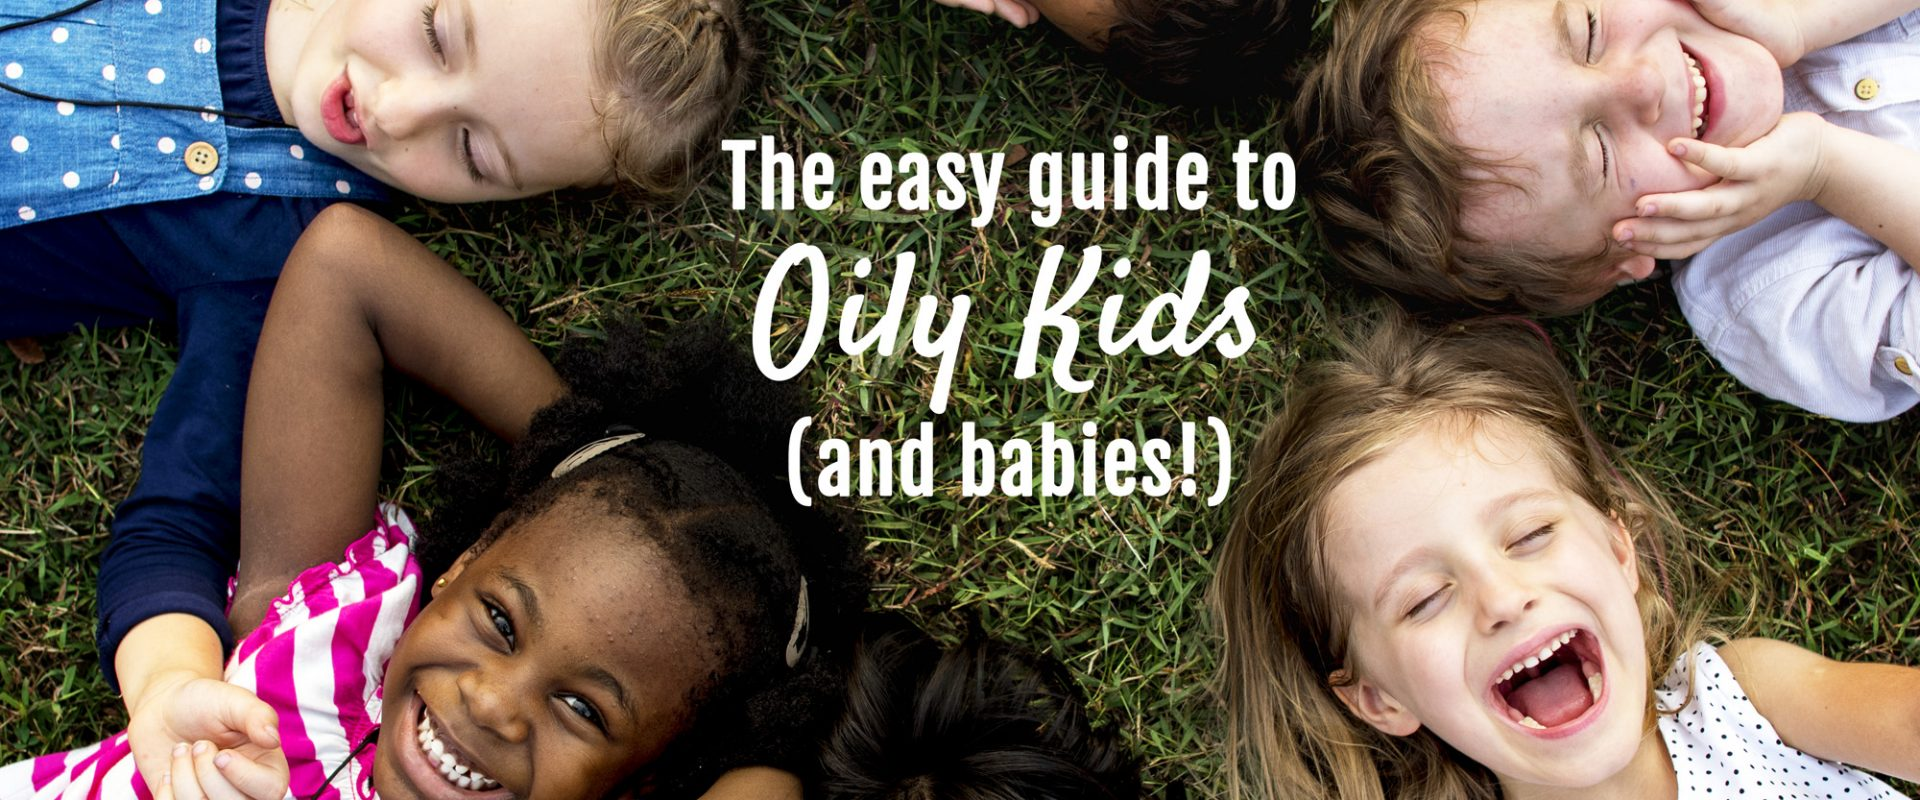 The Easy Guide to Oily Kids